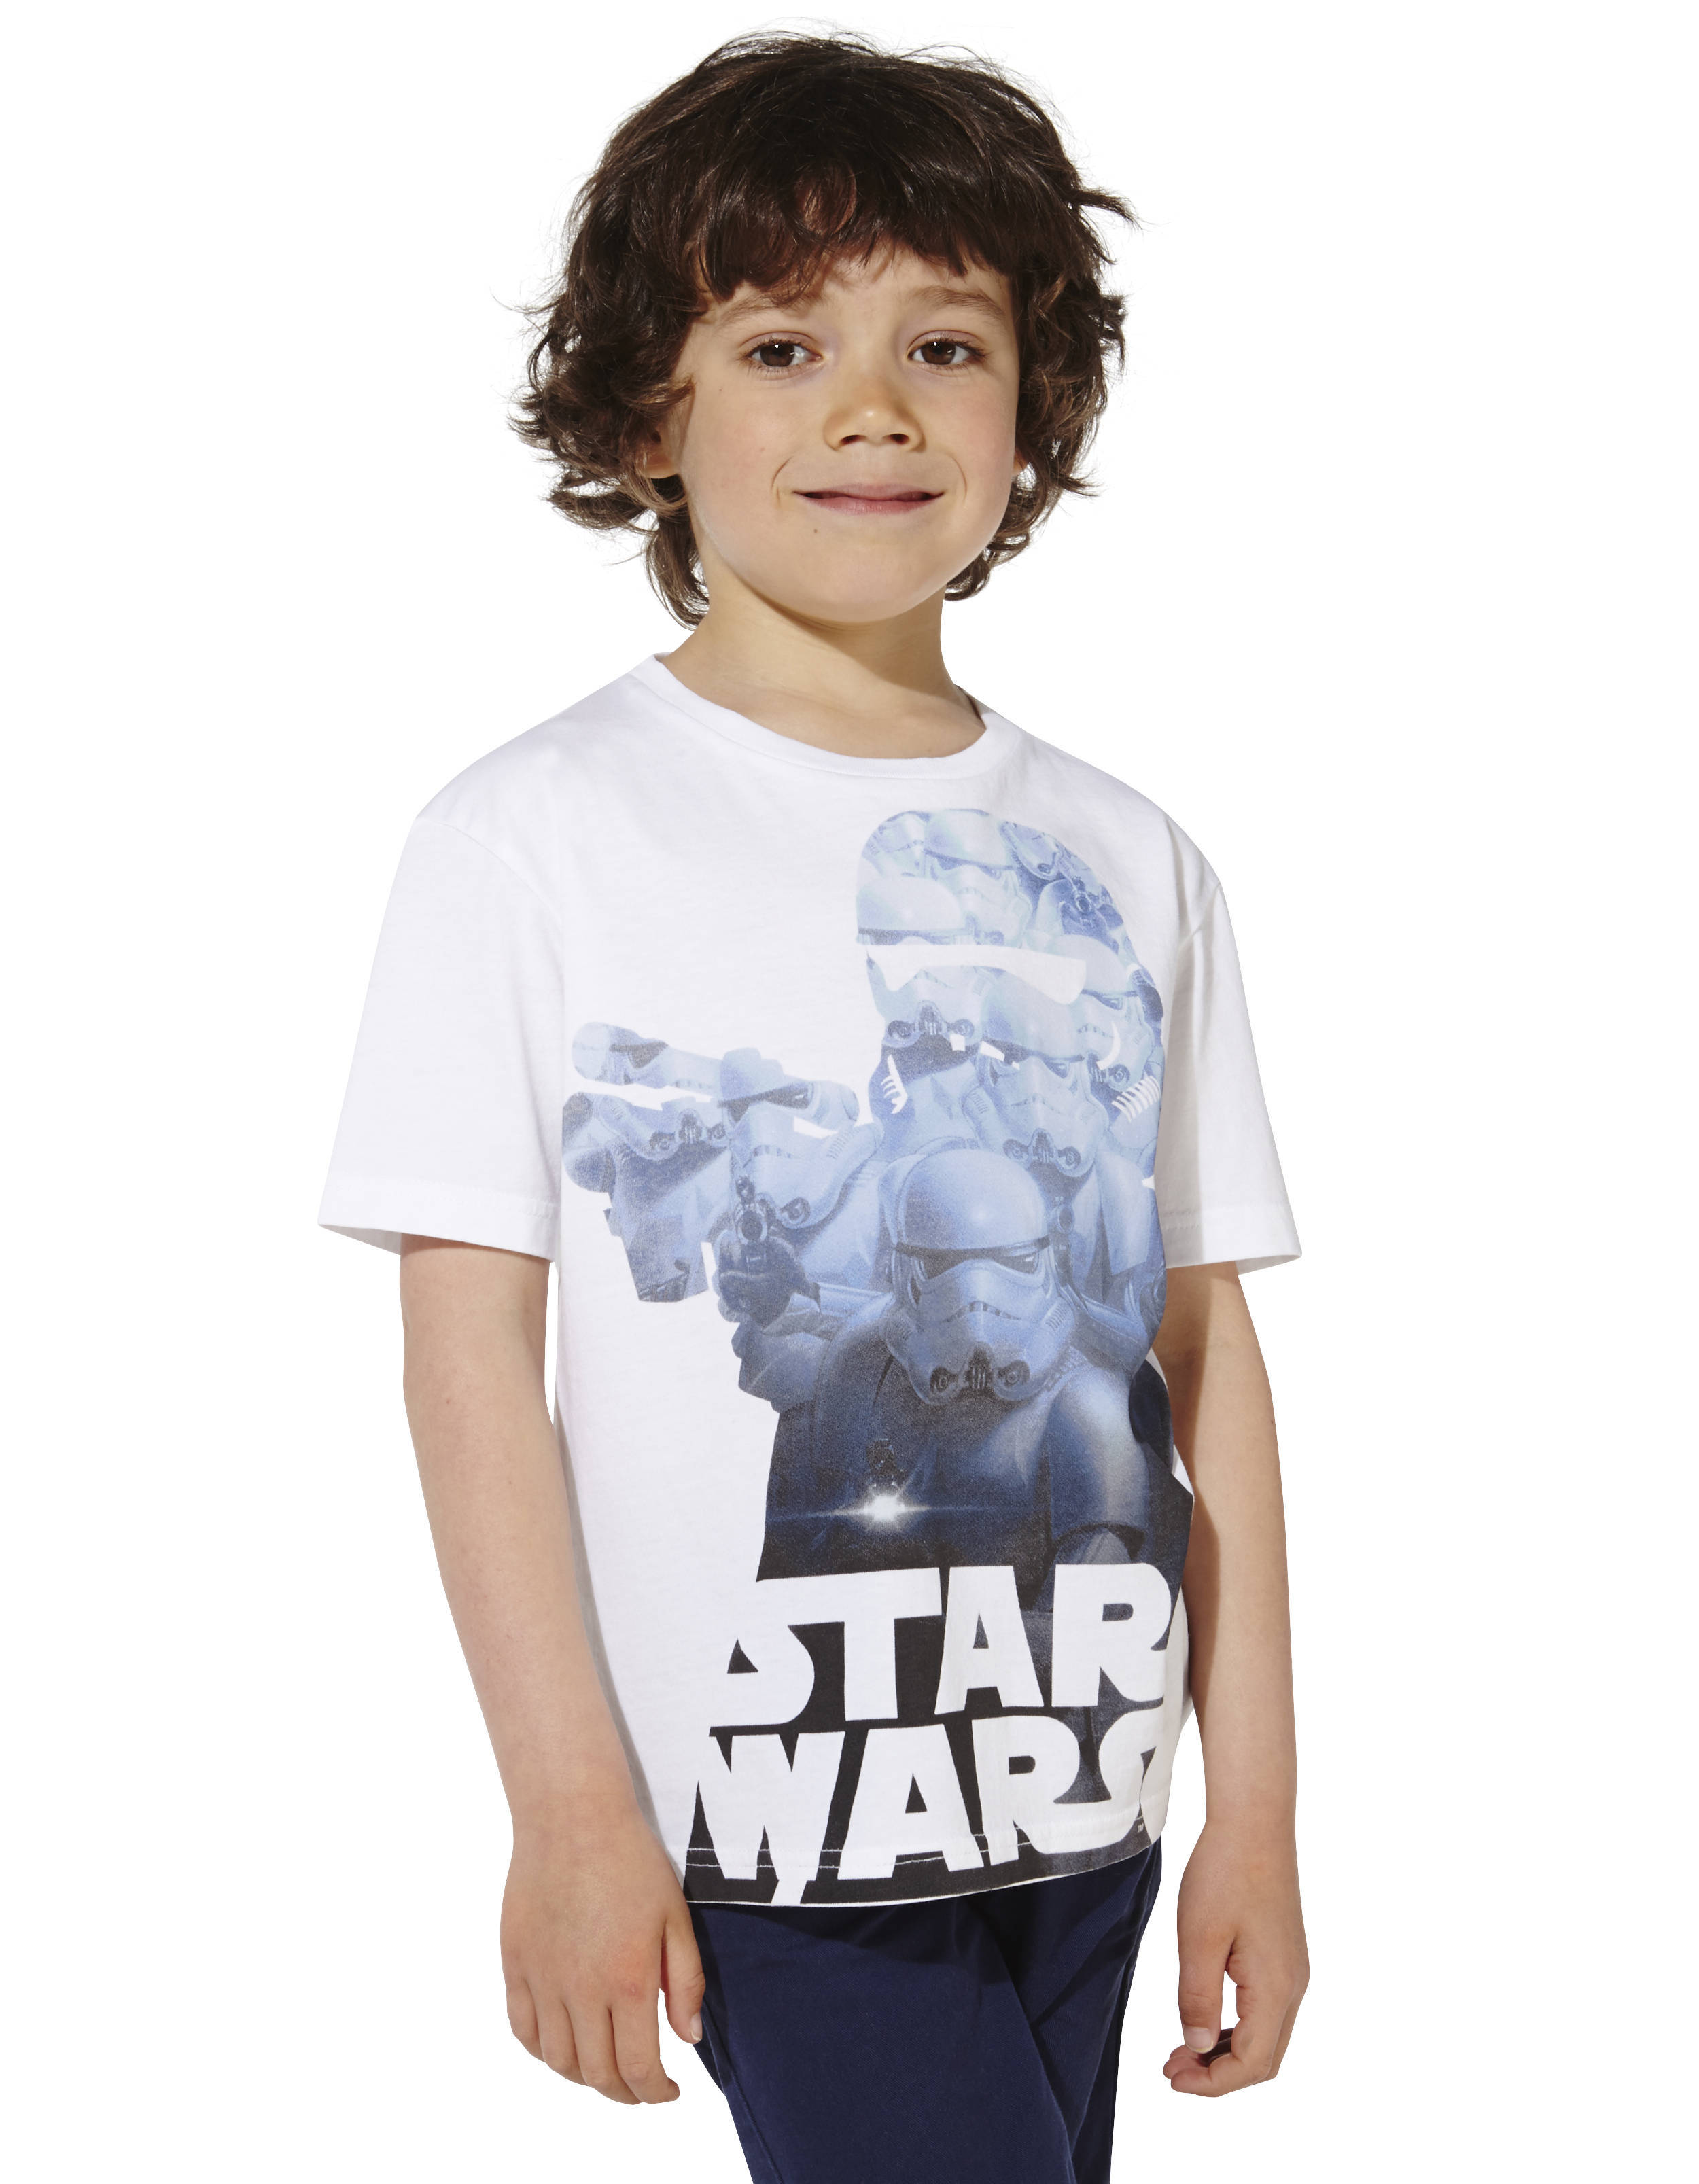 t shirt enfant star wars 100 coton lbestorm2 celio france. Black Bedroom Furniture Sets. Home Design Ideas